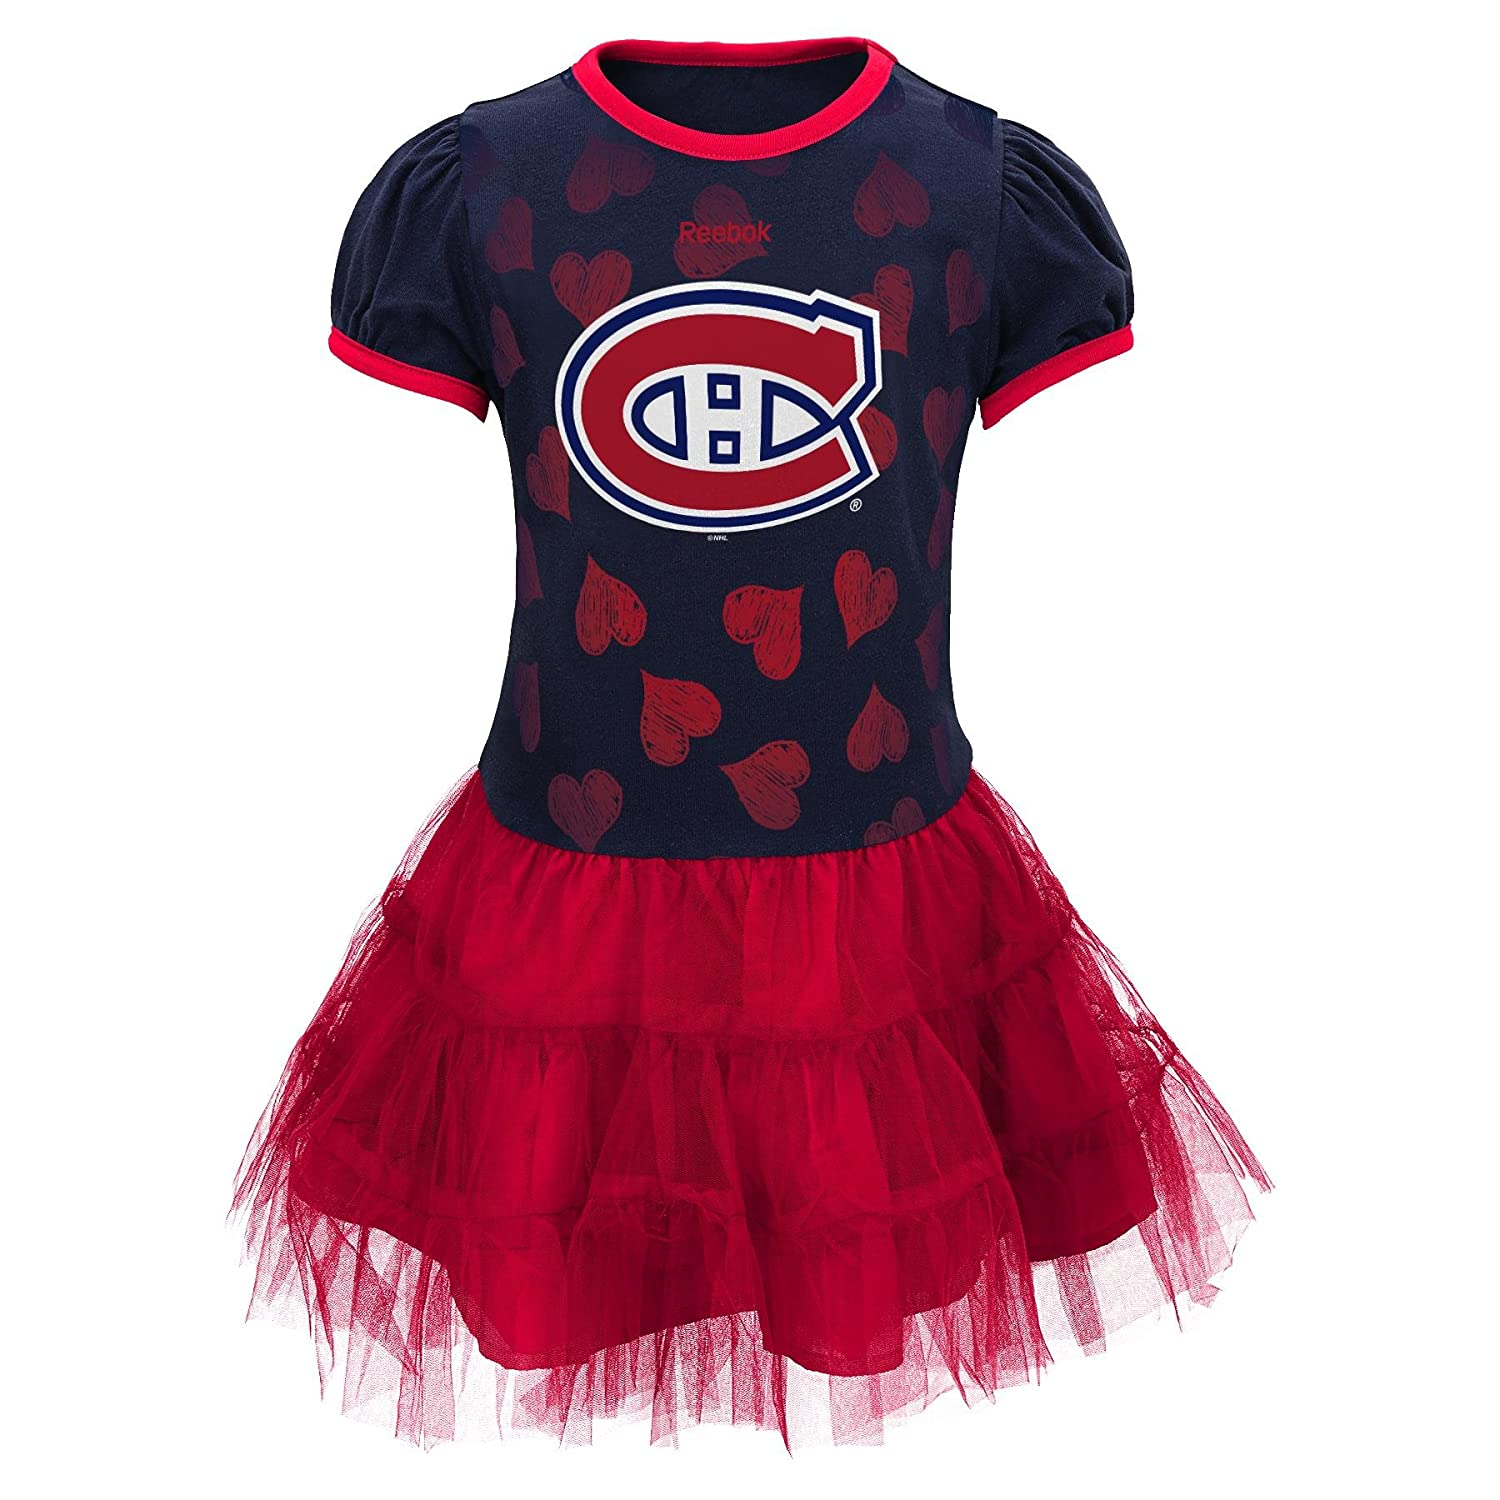 Montreal Canadiens Infant Girls Love To Dance Tutu Dress - Size 24 Months Reebok